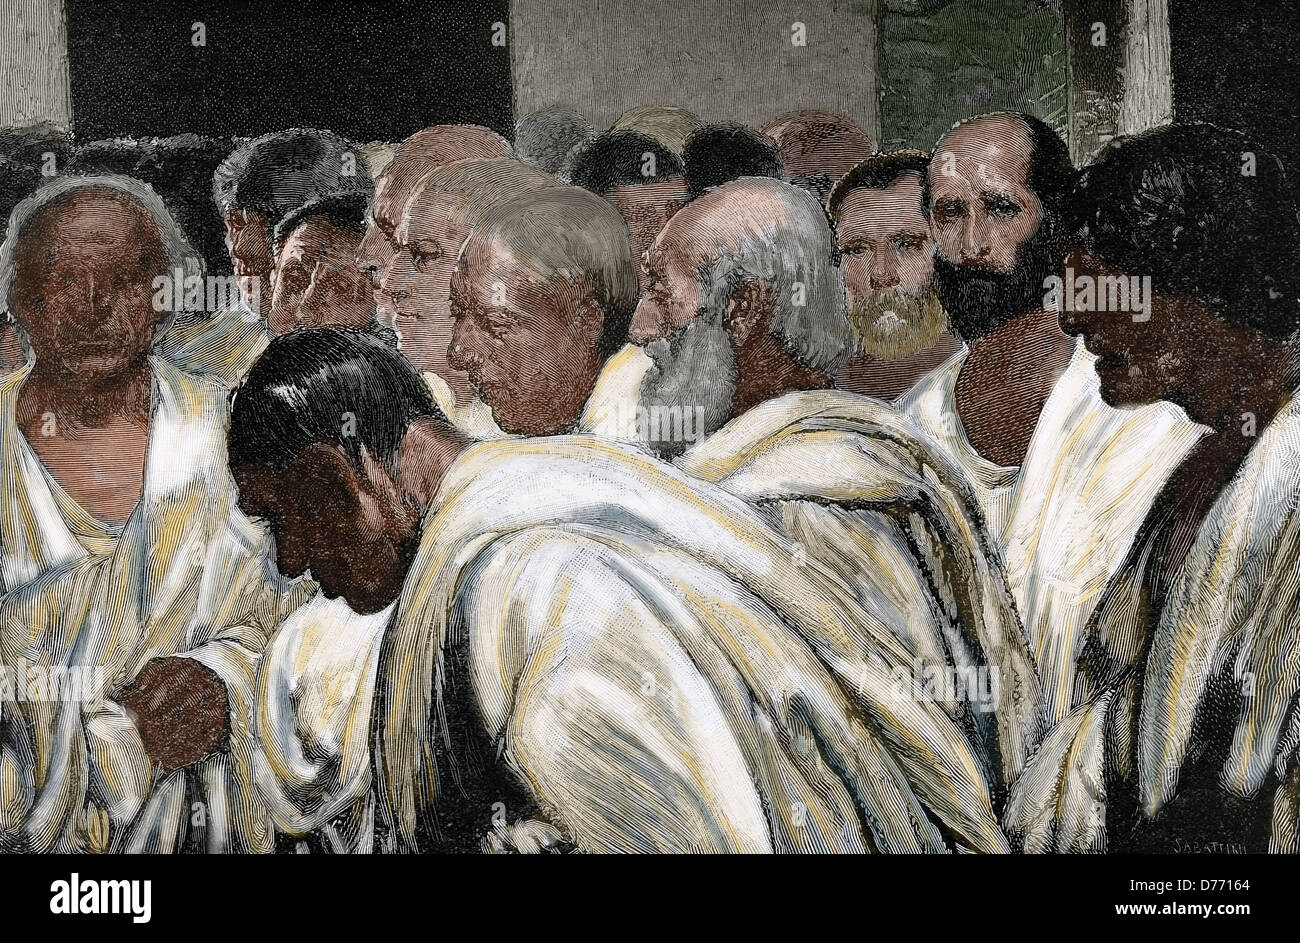 Appius Claudius the Censor (340-273 BC). Roman Censor. Engraving by Sabattini after a fresco by Cesare Maccari. - Stock Image